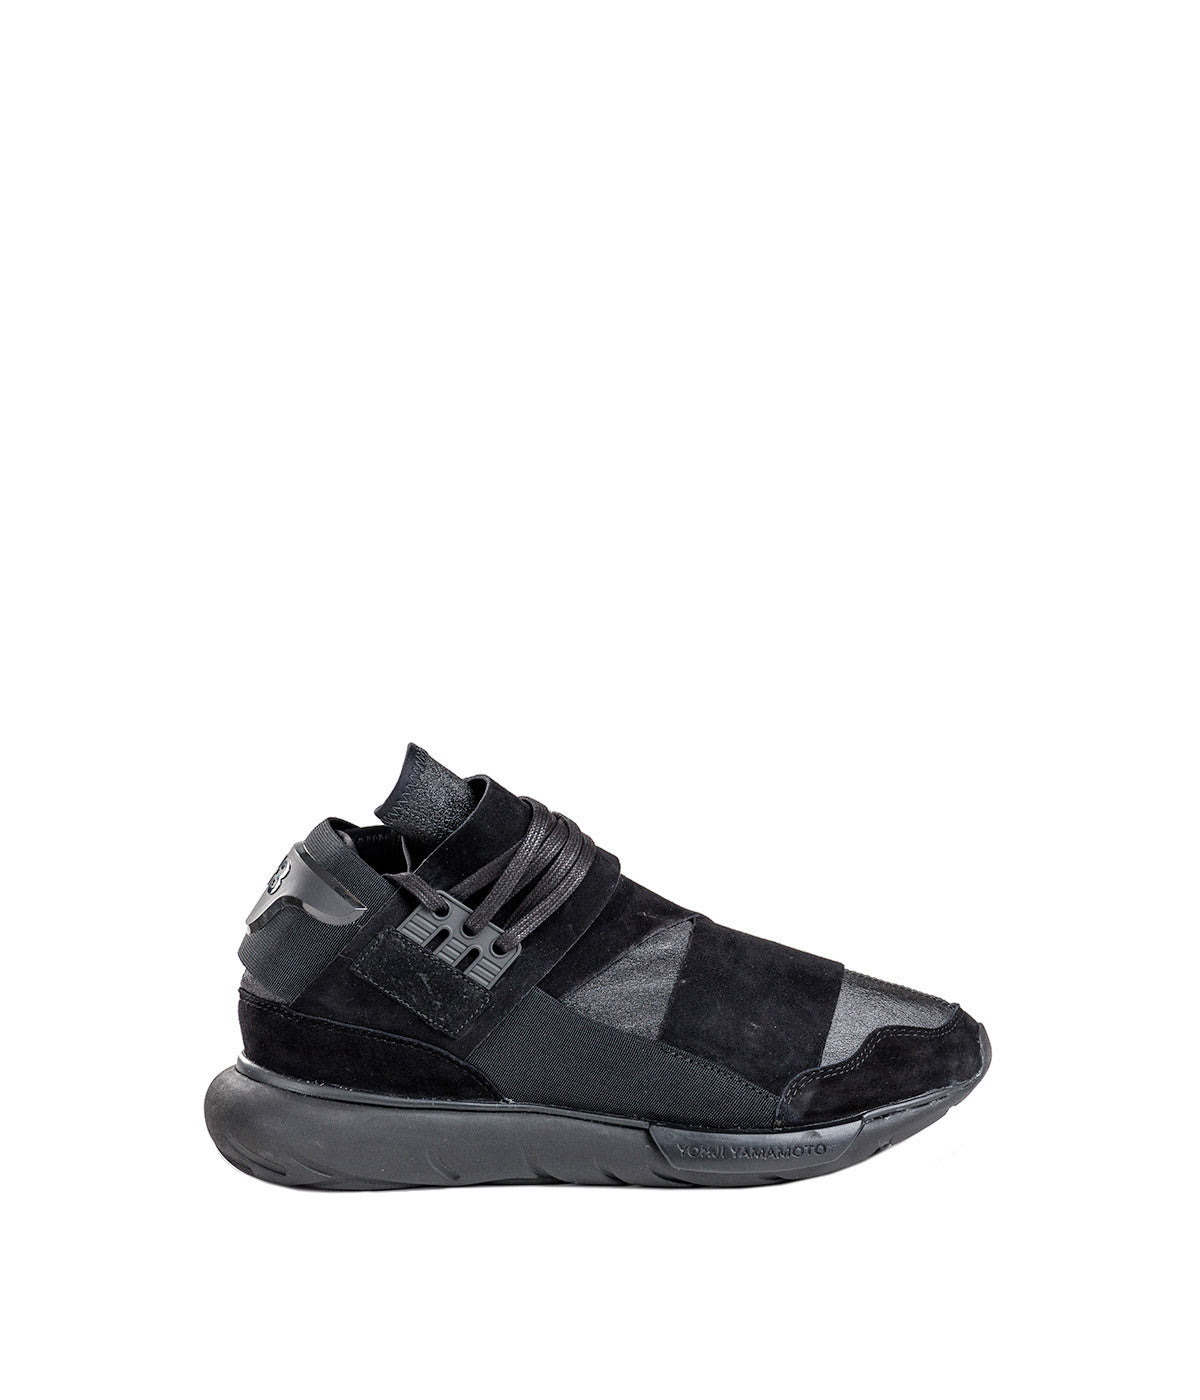 Charcoal & Black Qasa High Trainers